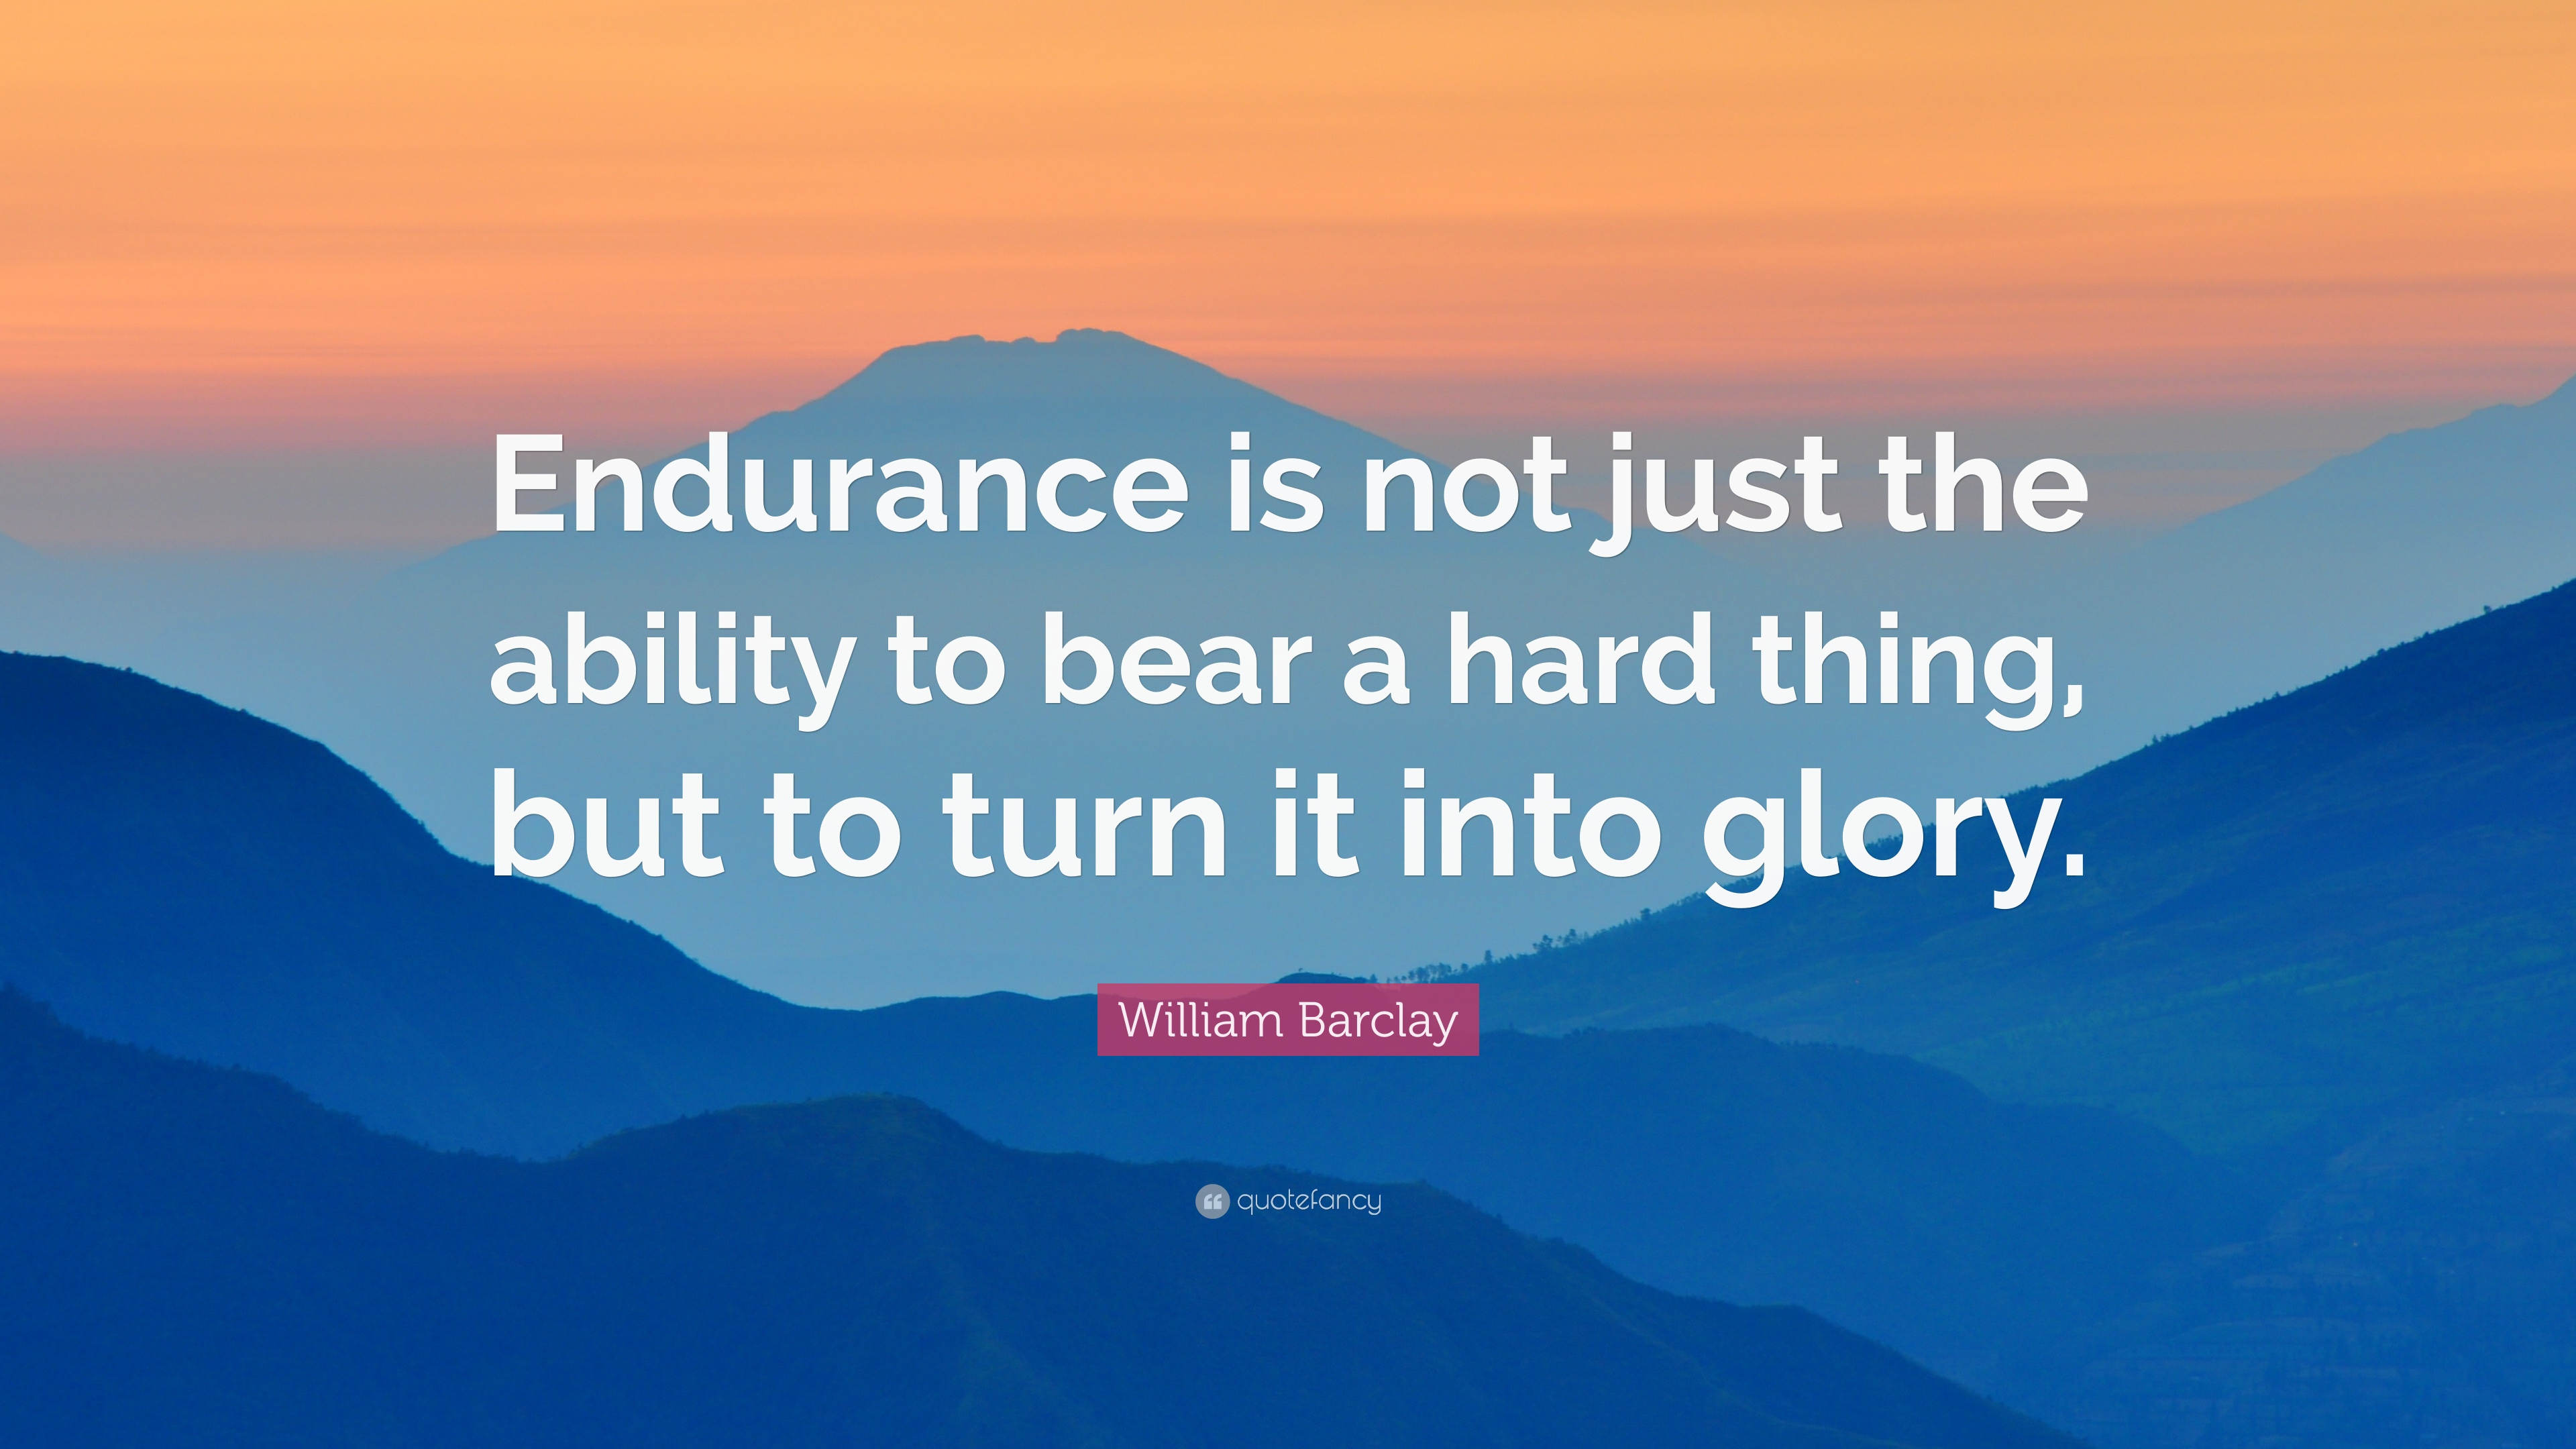 Endurance Quotes   William Barclay Quote Endurance Is Not Just The Ability To Bear A